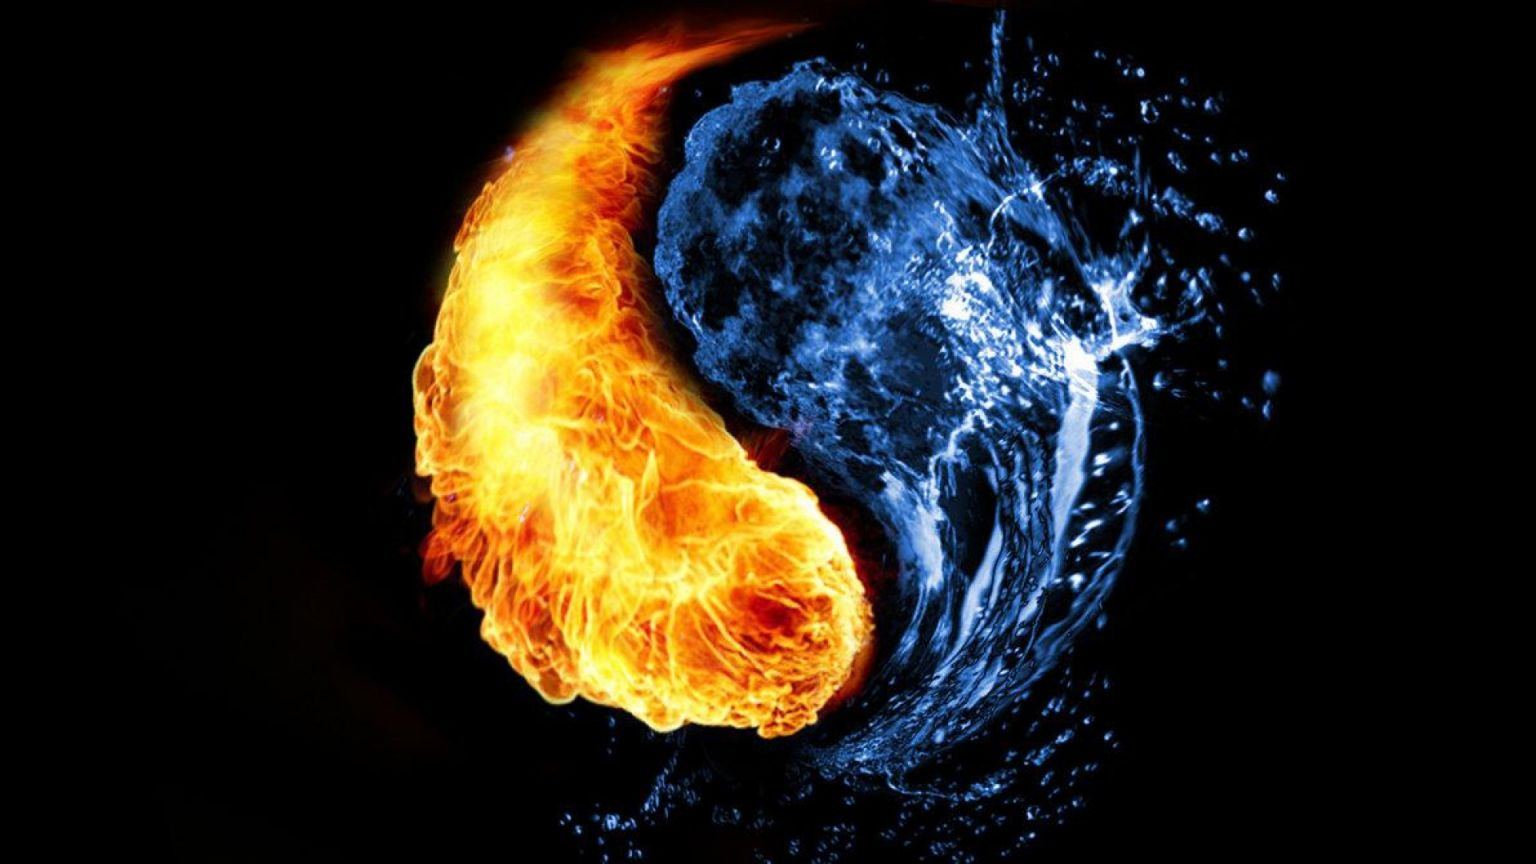 Cool Blue Fire Wallpapers Top Free Cool Blue Fire Backgrounds Wallpaperaccess